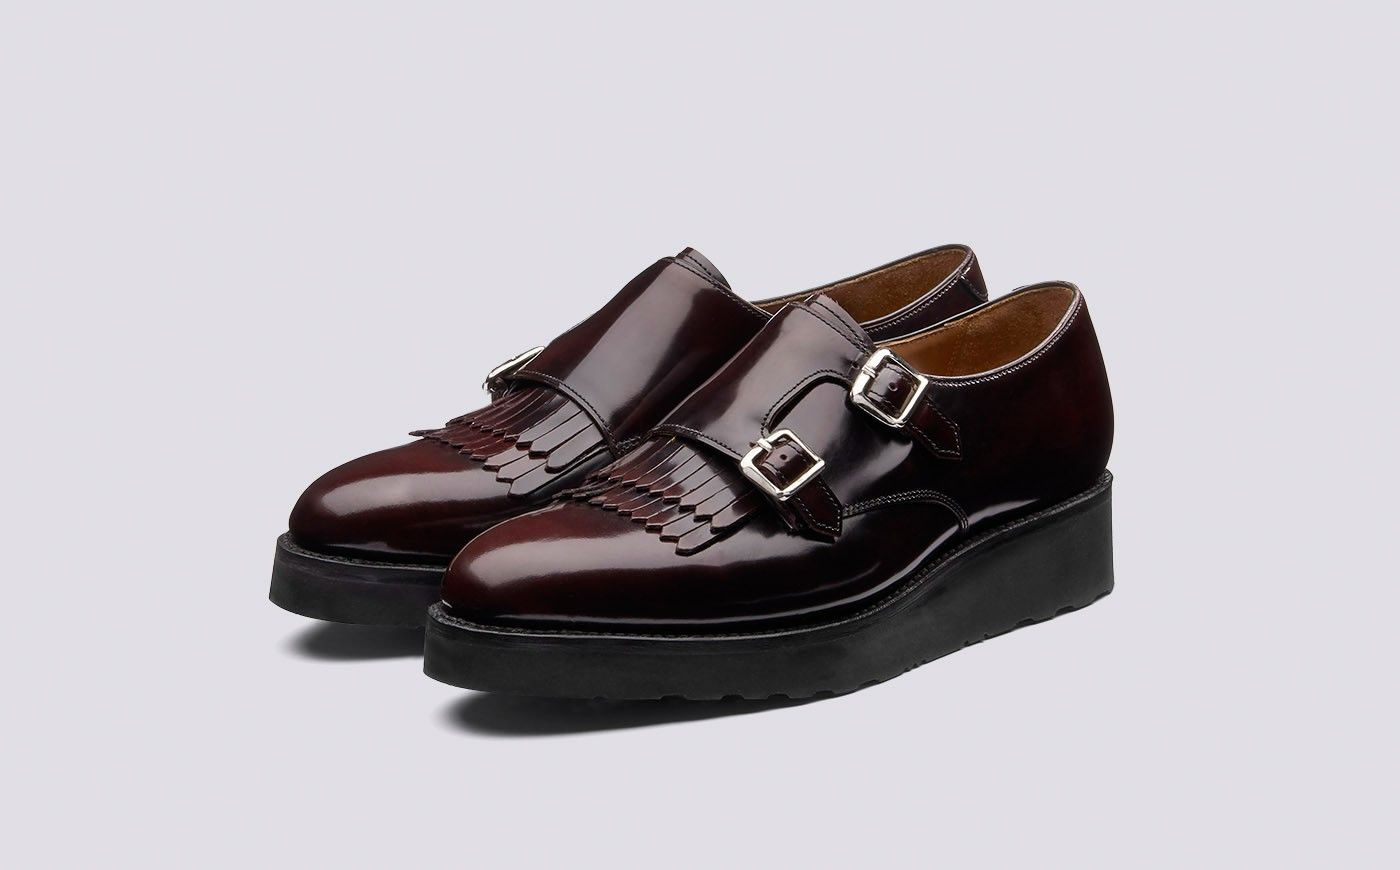 Audrey | Womens Monk Strap Shoe in Burgundy Gloss Leather with a Black  Wedge Sole